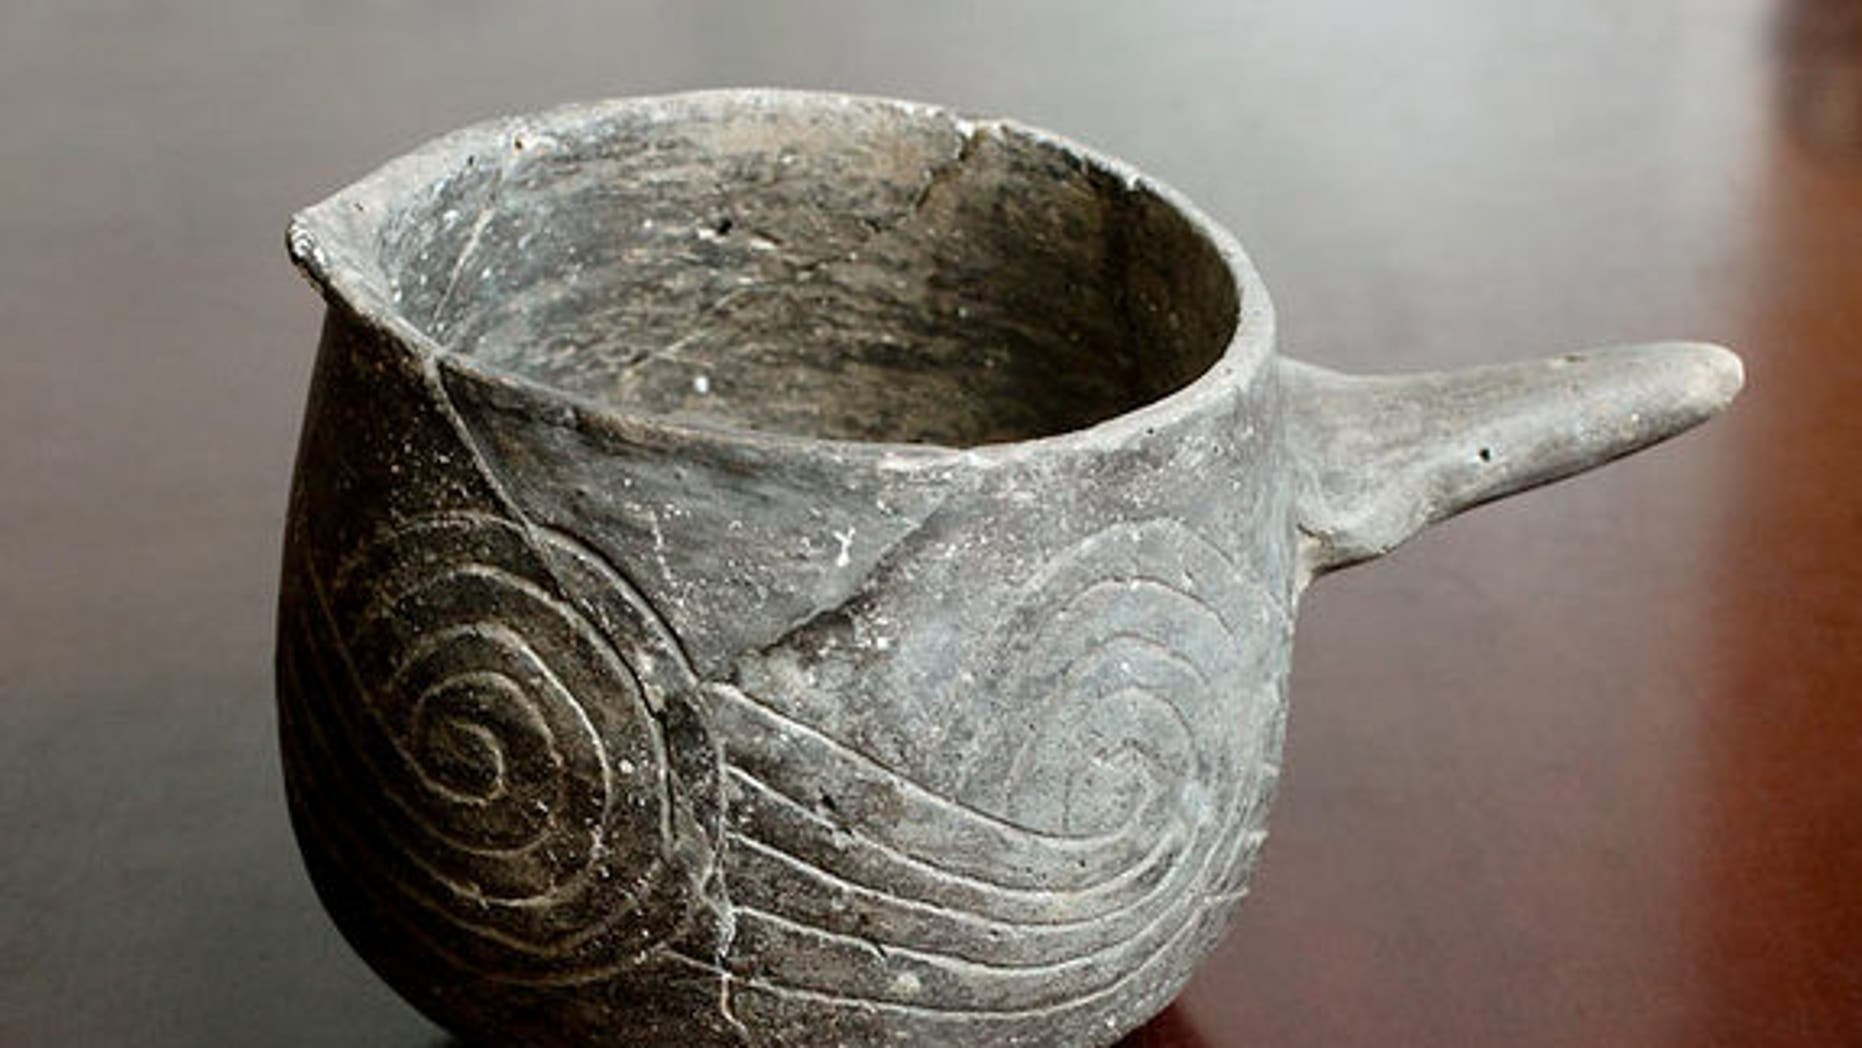 """Residents of Cahokia, a massive pre-Columbian settlement near the confluence of the Missouri and Mississippi Rivers, consumed """"black drink"""" from special pottery vessels like this one. The drink made them vomit and was likely consumed during purification rituals."""